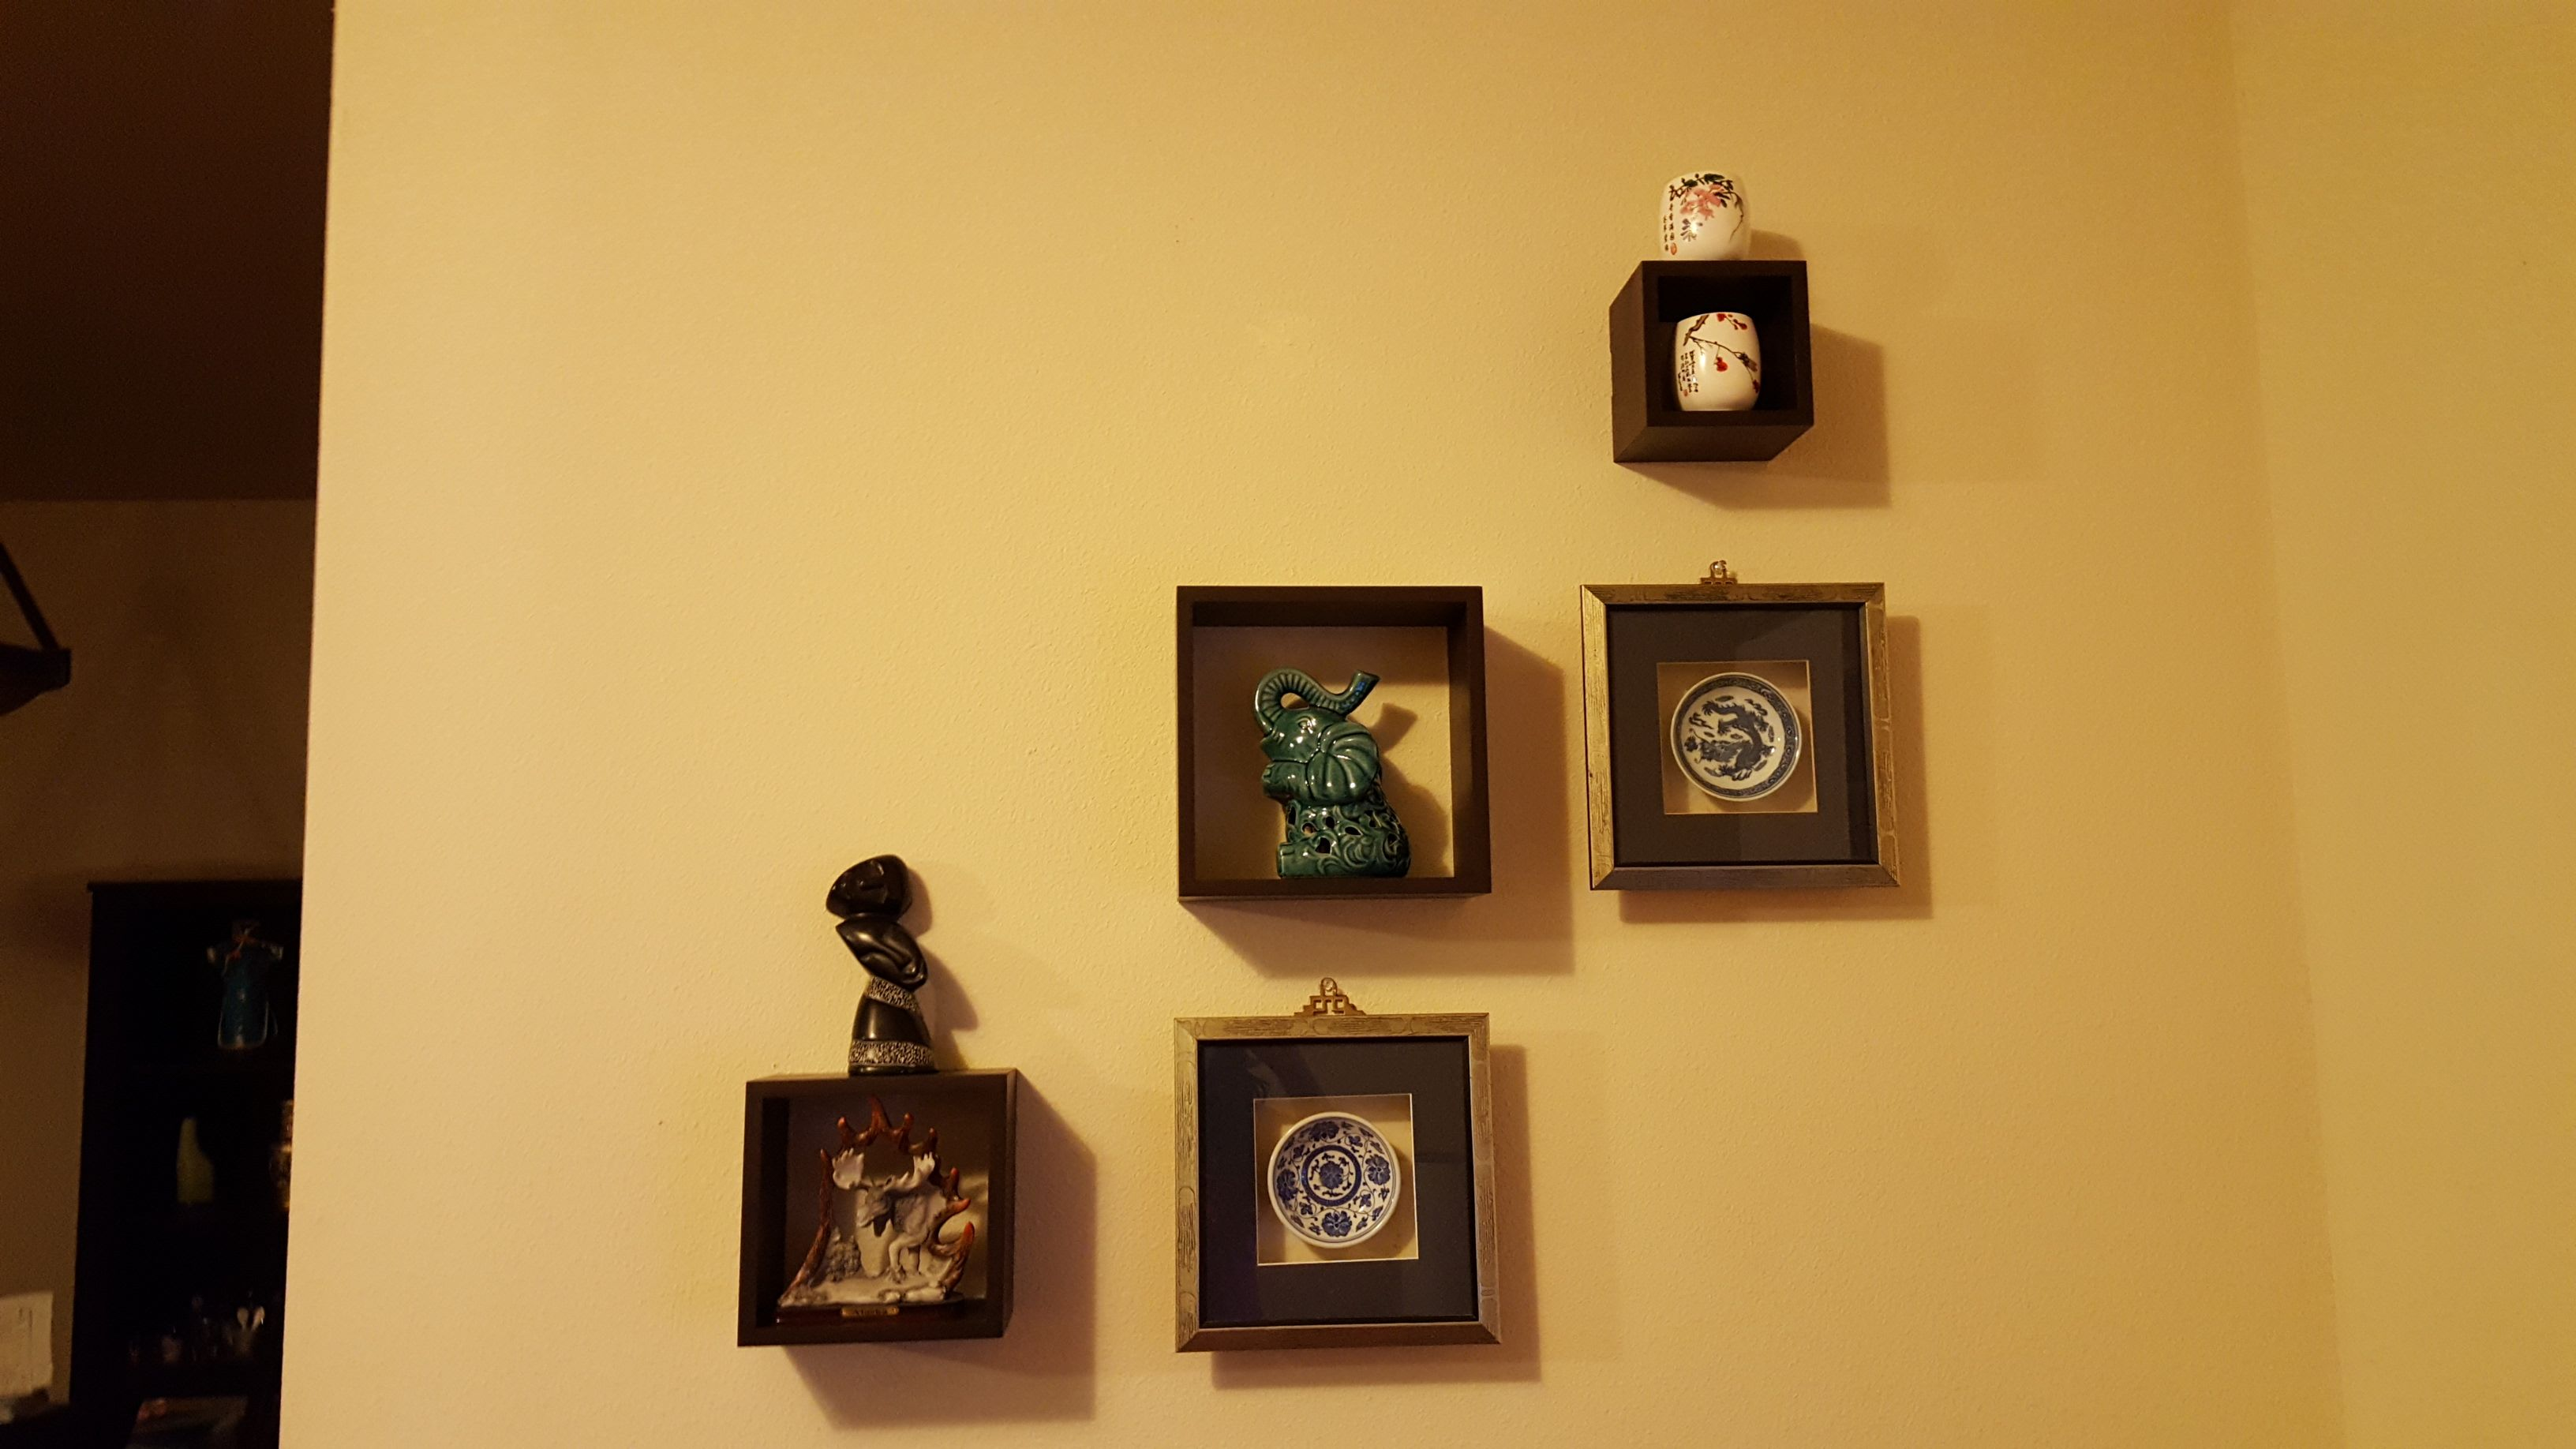 wall decor using square cubes and show pieces | wall decor ...